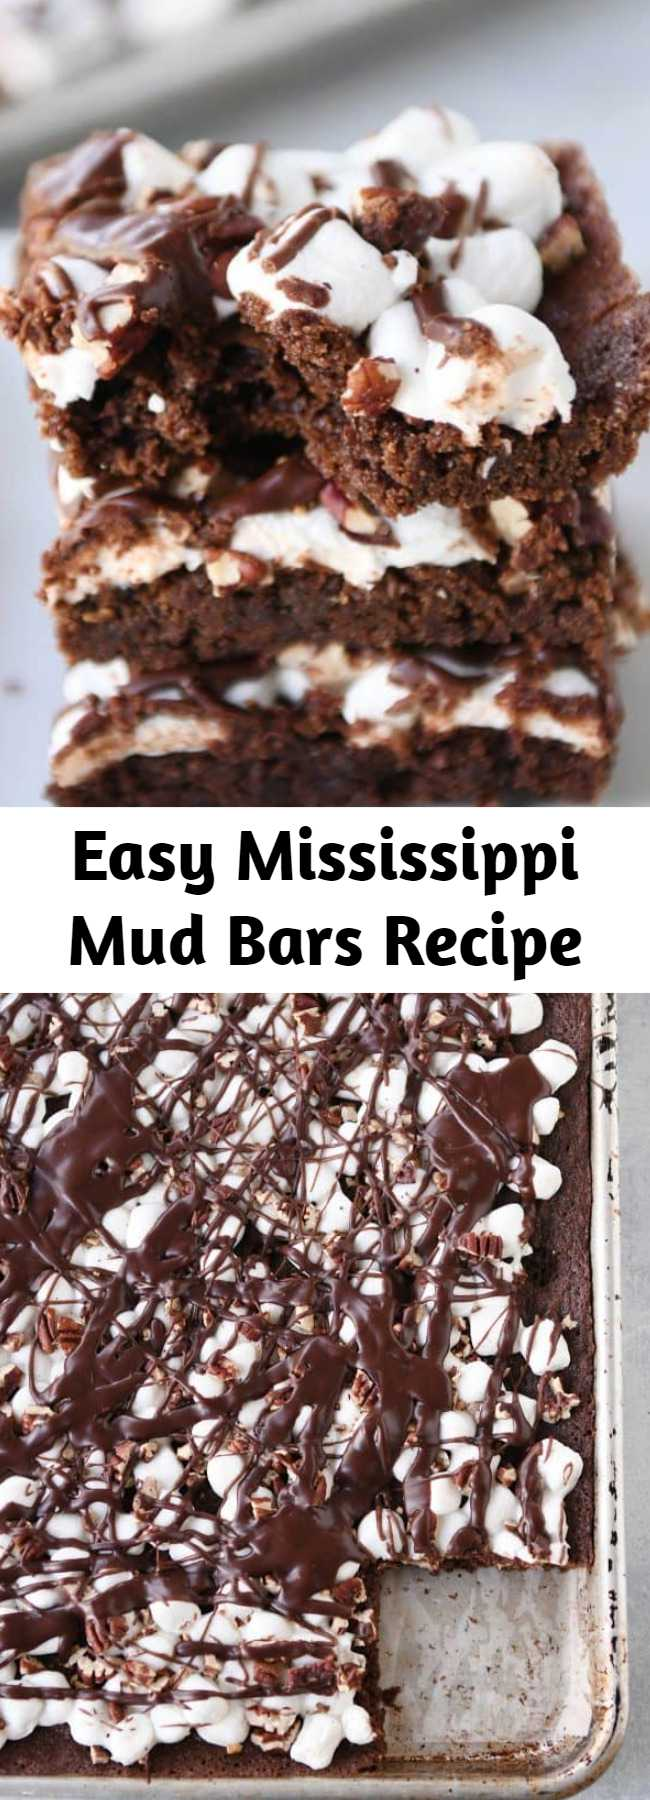 Easy Mississippi Mud Bars Recipe - The brownie + marshmallows + toasted pecans + fudge sauce combo has never been tastier (or easier!). These Mississippi Mud Bars are insanely delicious and so simple to make!